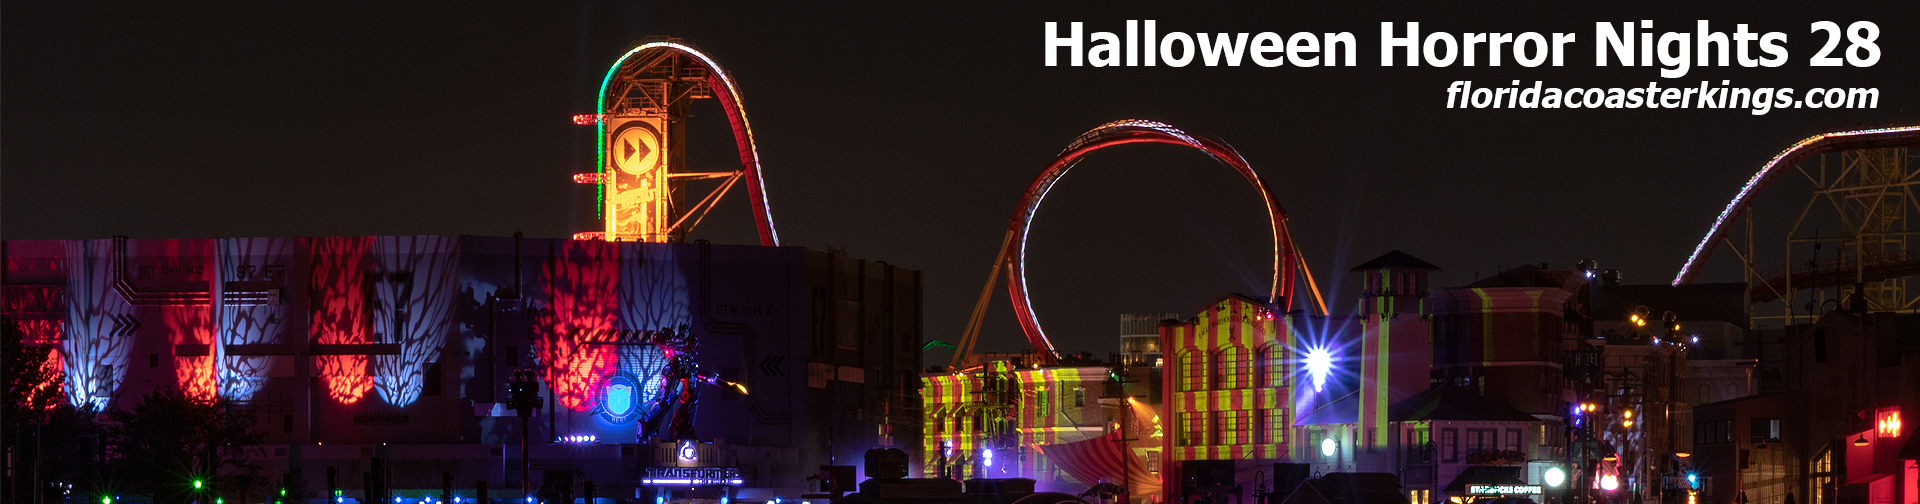 Halloween Horror Nights 28 Review